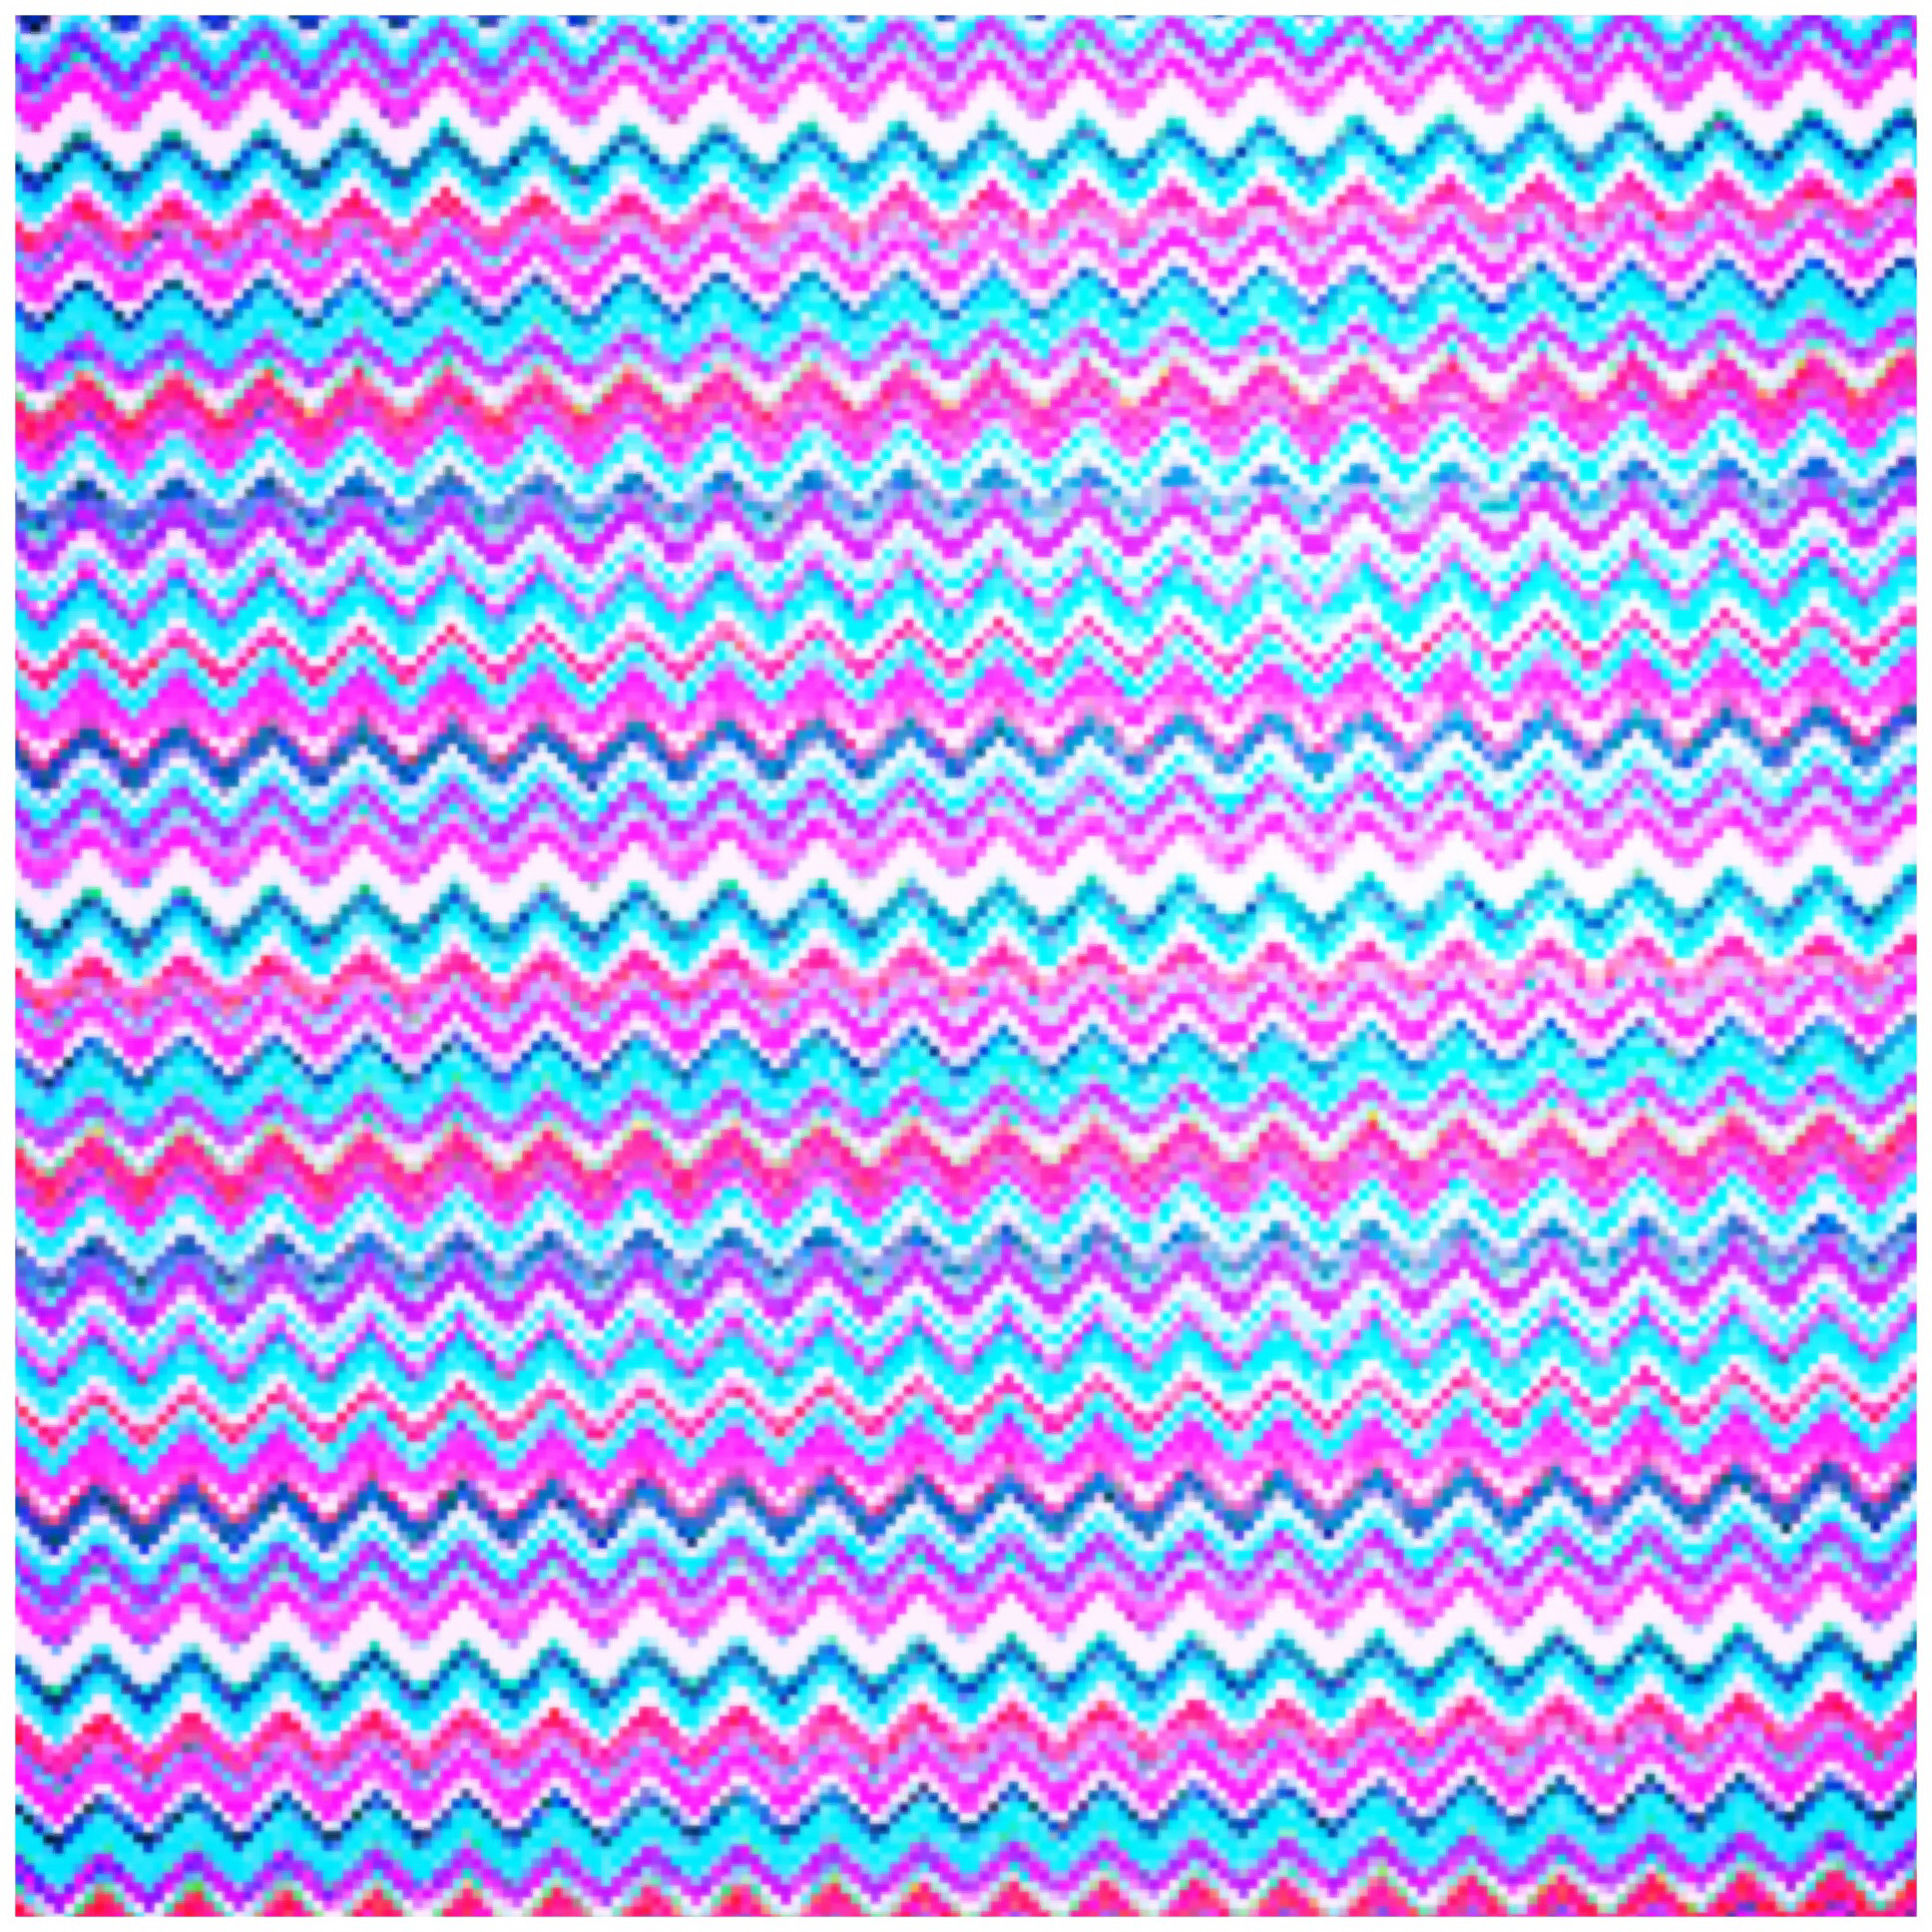 1936x1936 Cute purple chevron pattern! I have it as my background